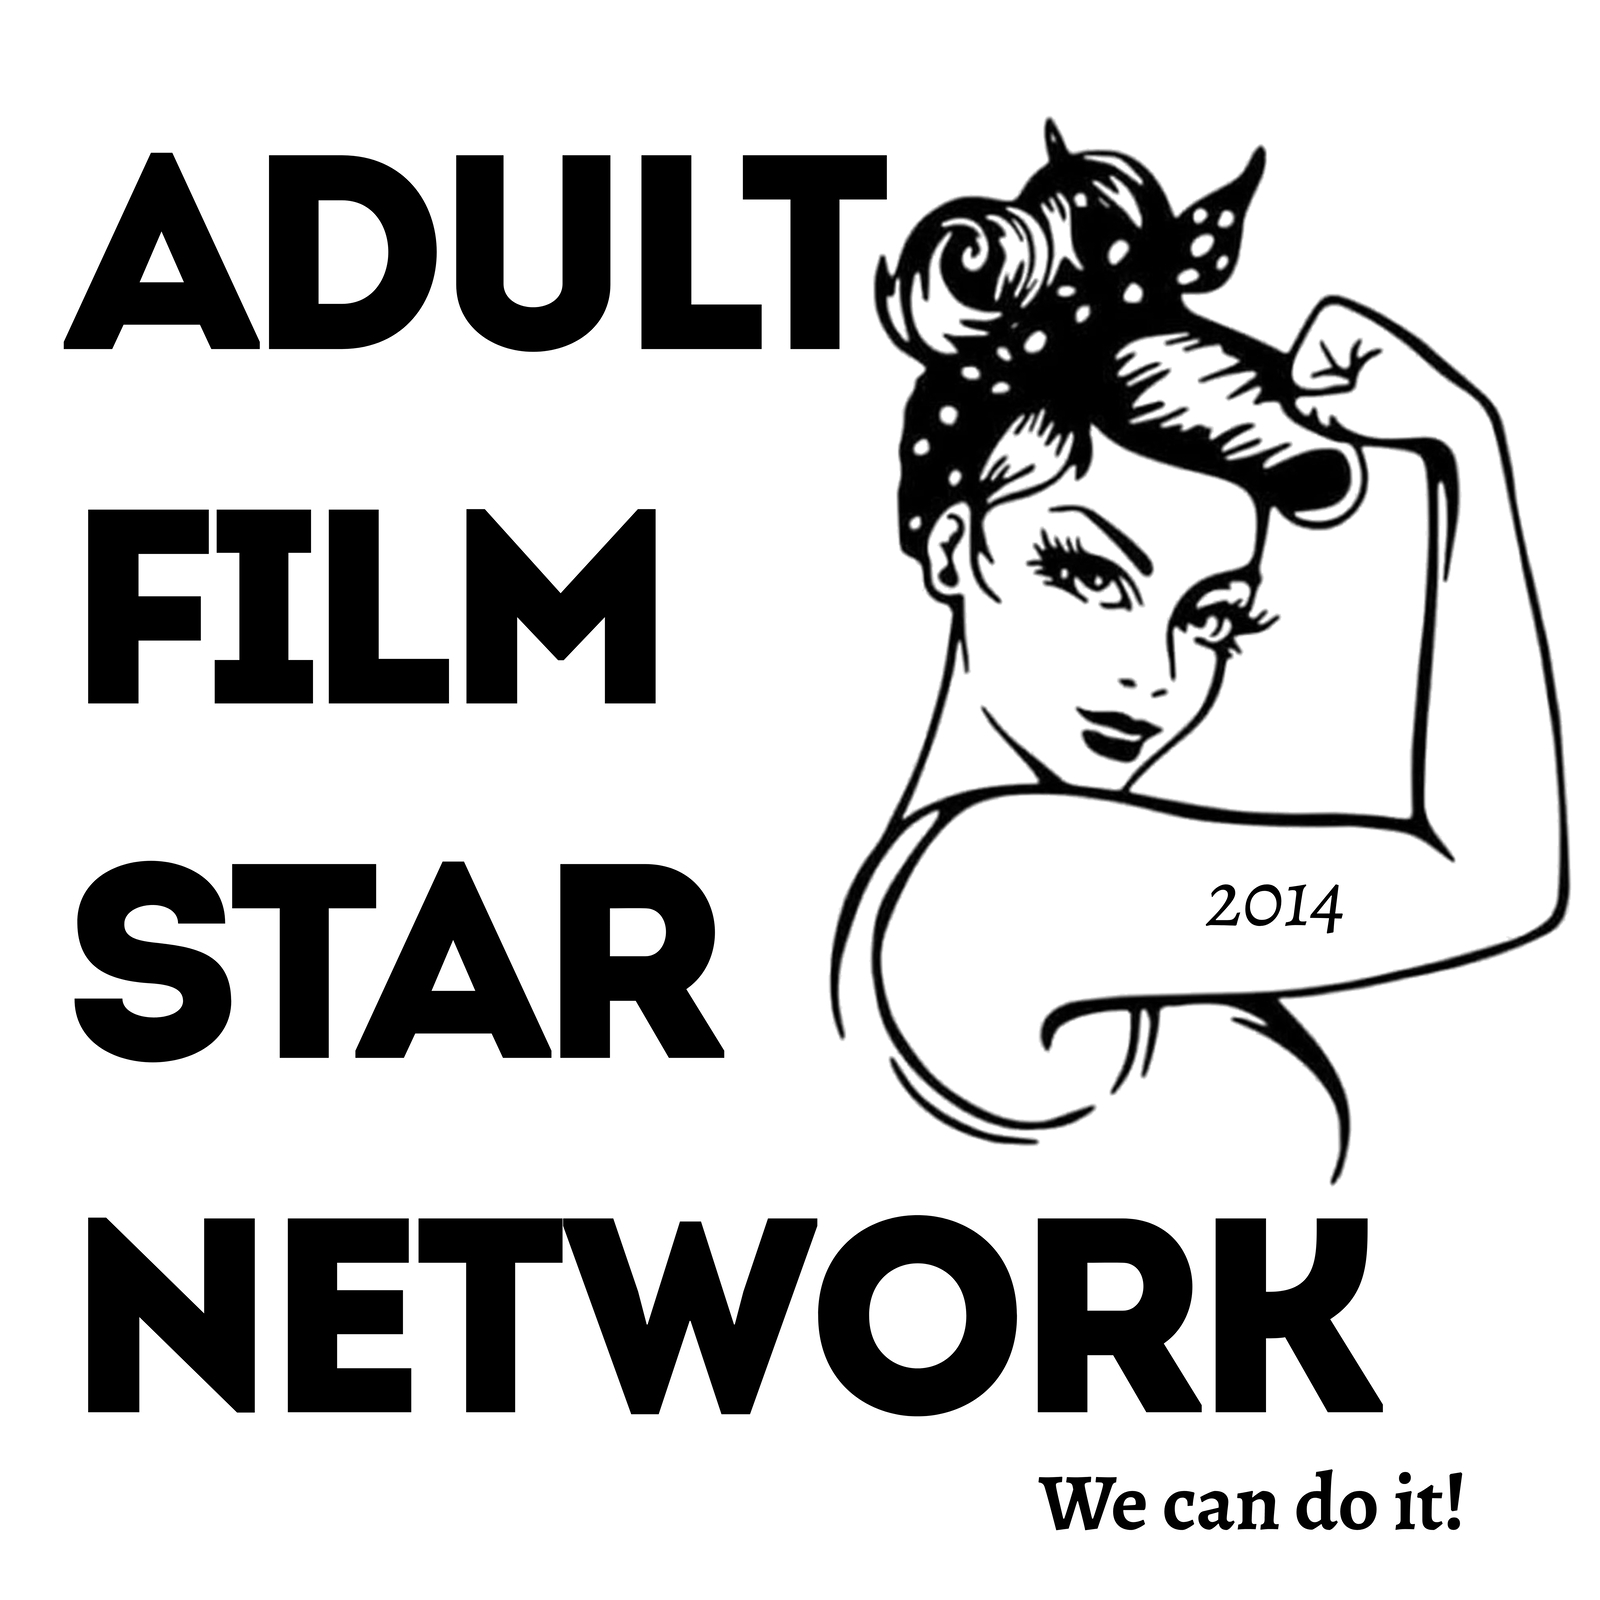 Adult Film Star Network